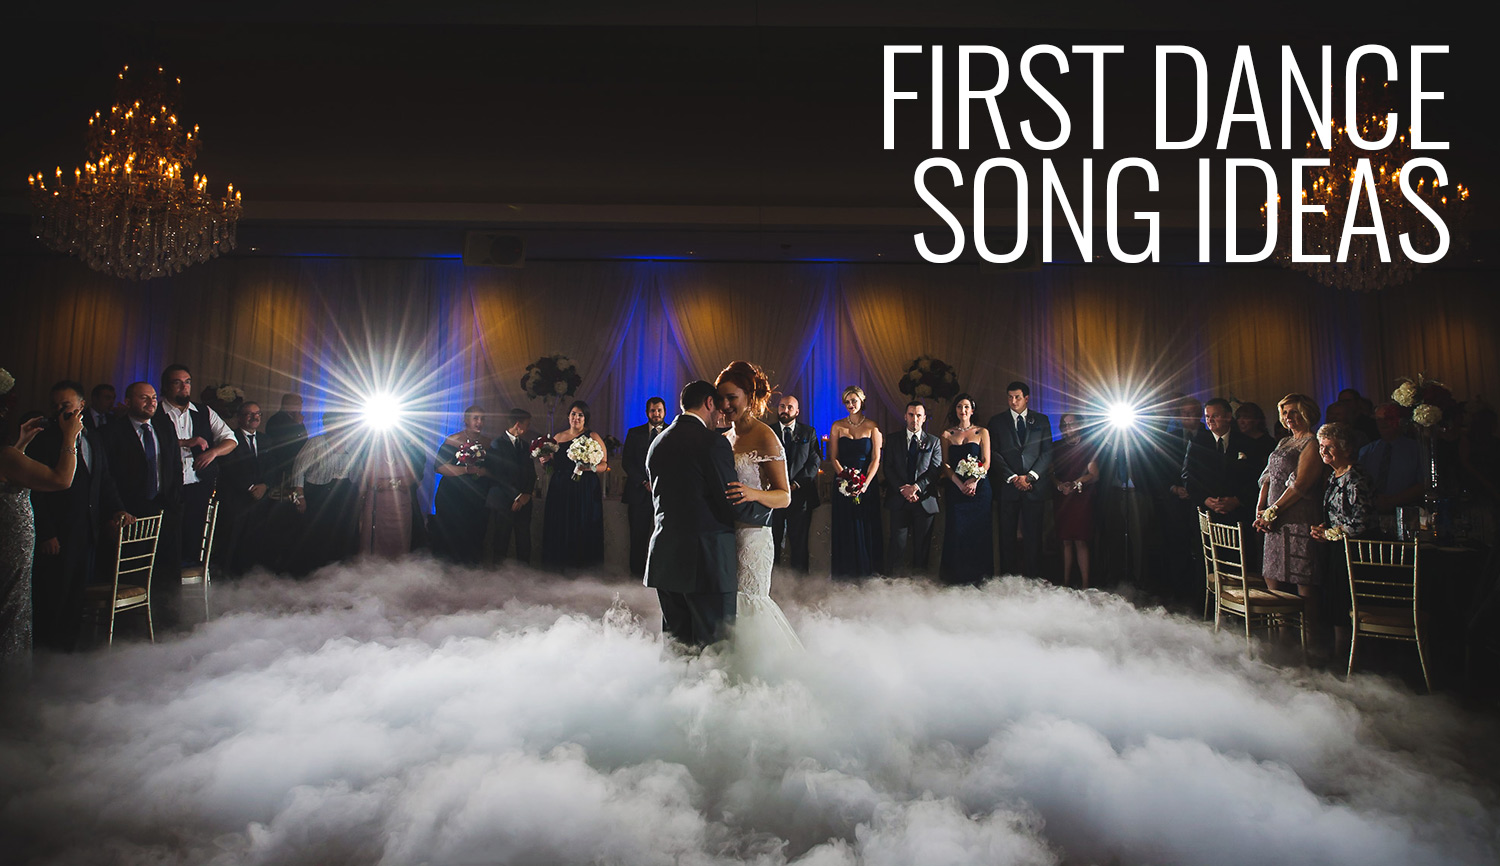 first dance wedding song ideas 2018